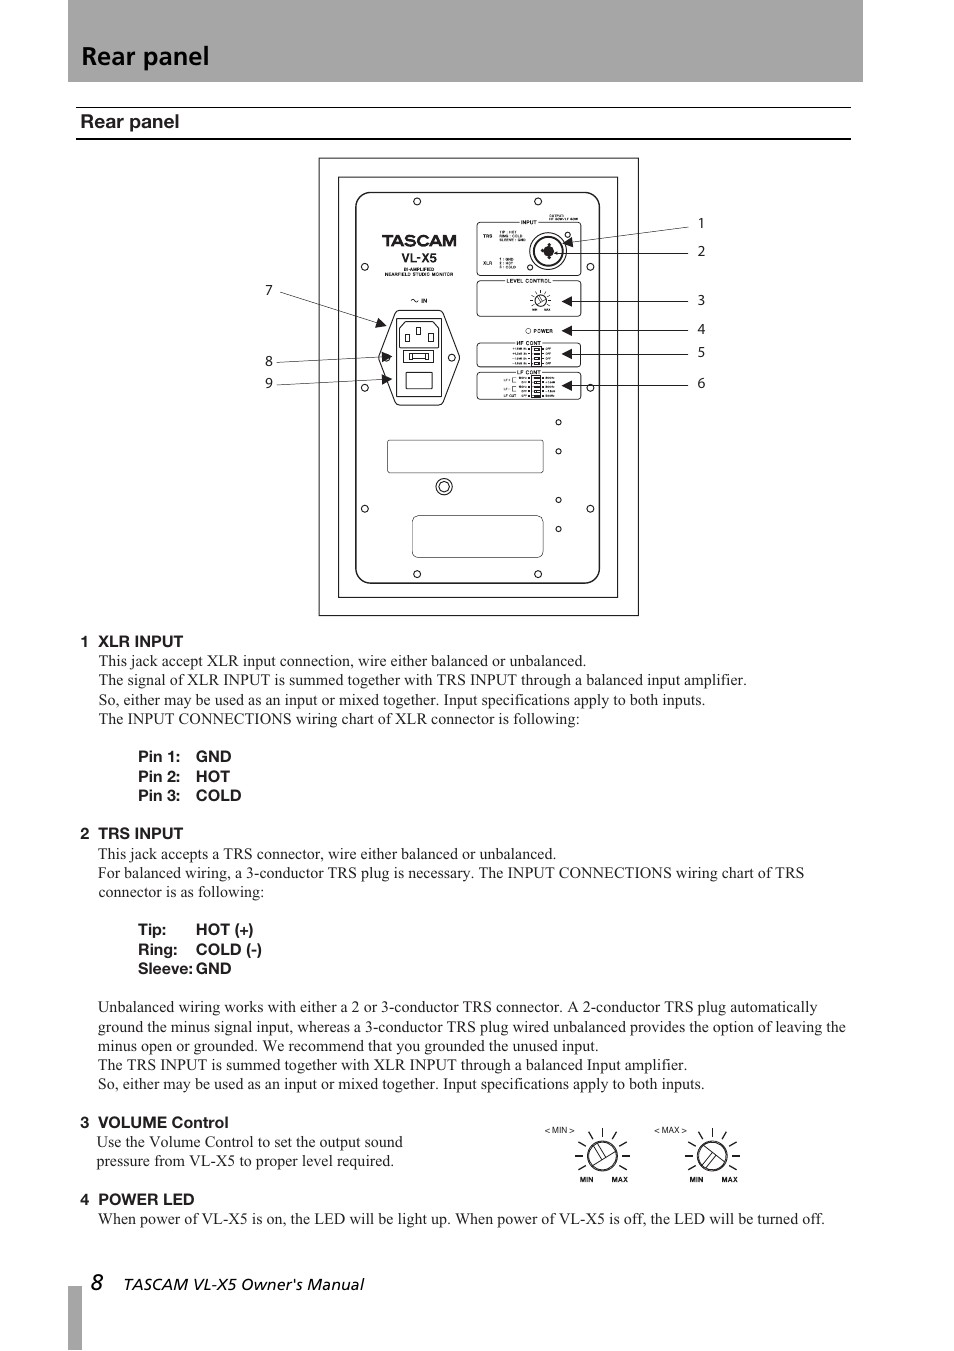 Tascam Wire Diagram Wiring Diagrams Scematic Strip Heat Rear Panel Vl X5 User Manual Page 8 12 Bow To Breaker